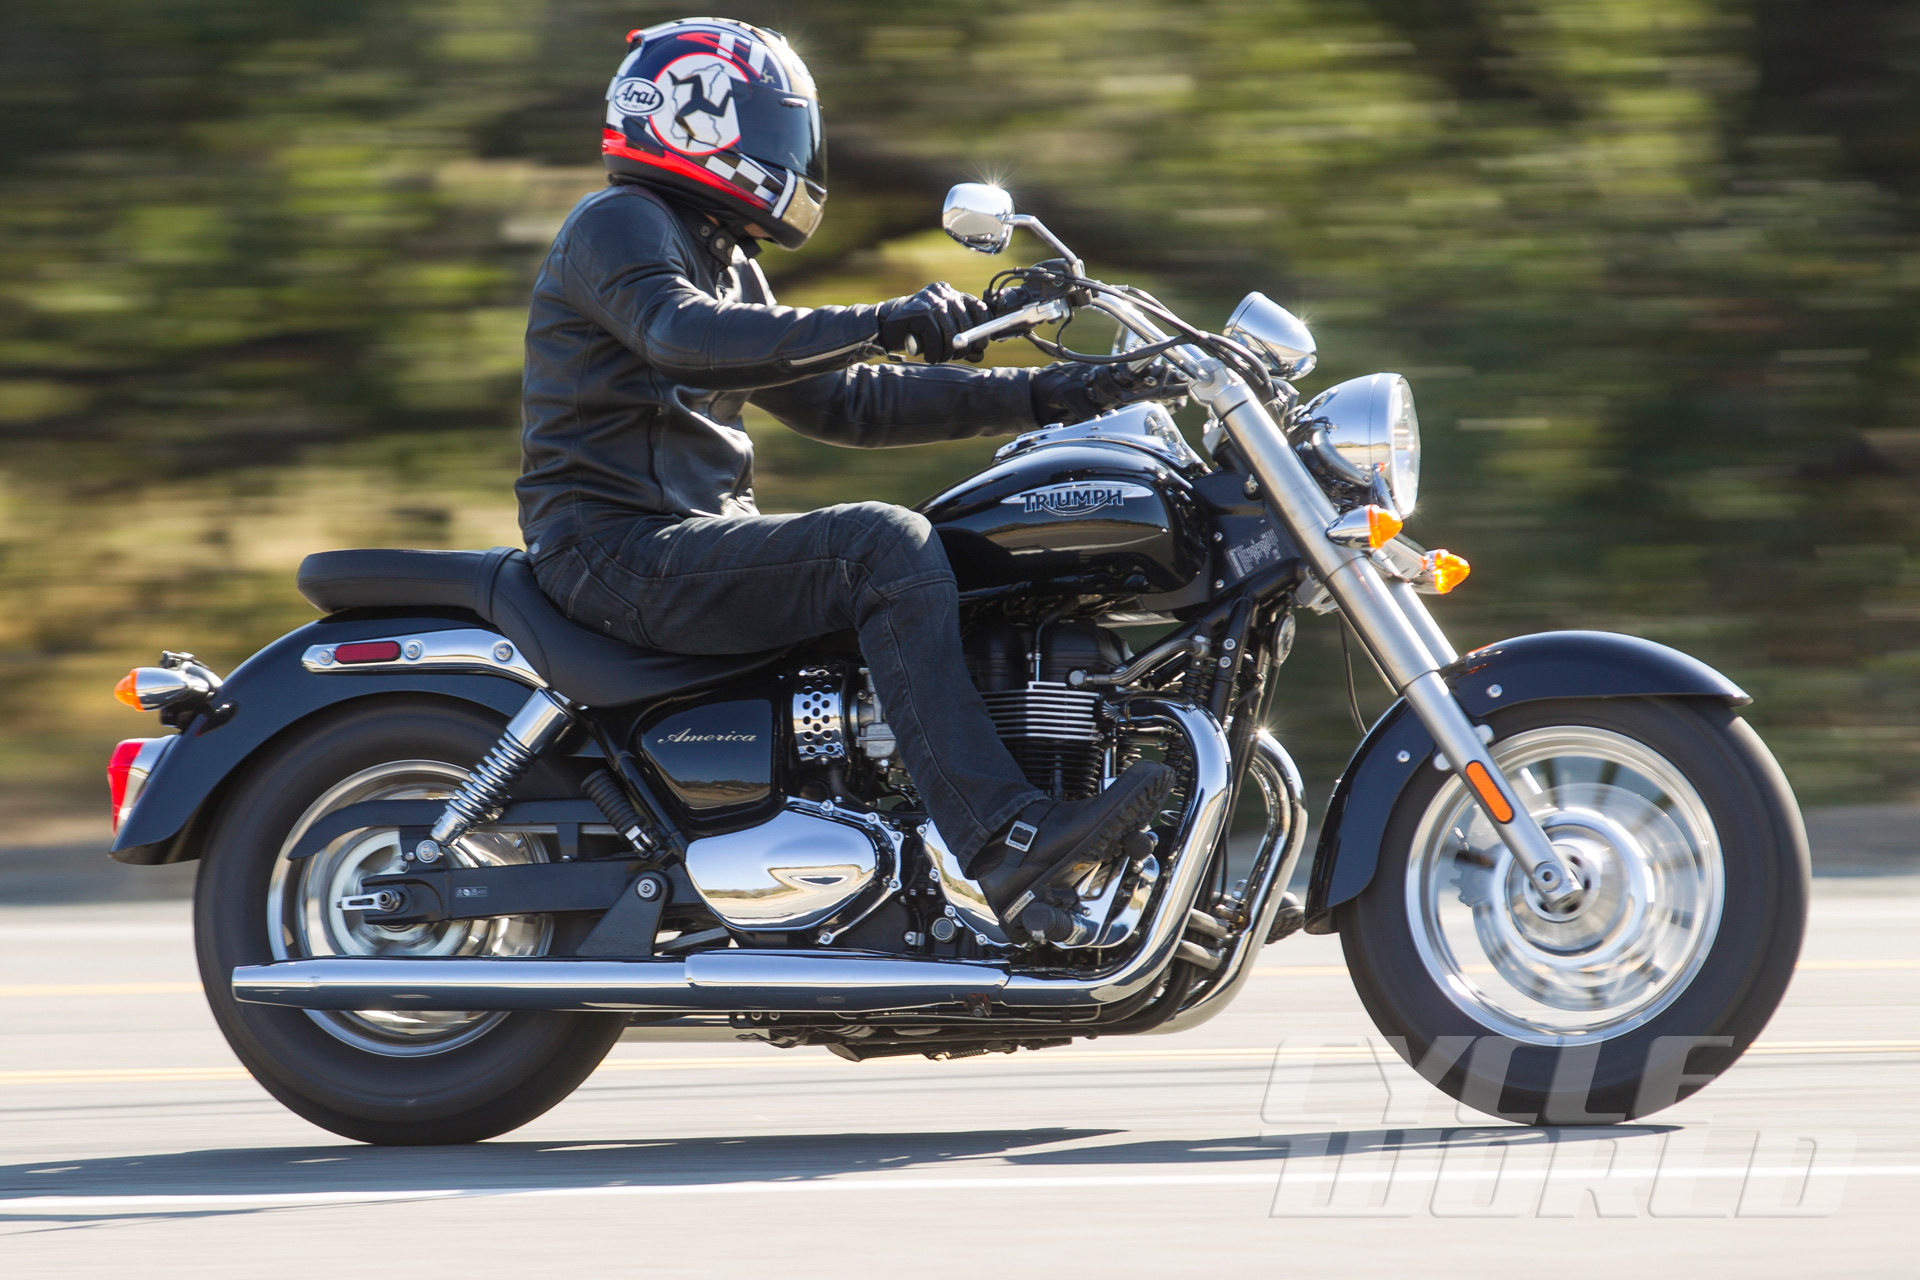 Sensational 2015 Triumph America Riding Impression Cruiser Motorcycle Caraccident5 Cool Chair Designs And Ideas Caraccident5Info